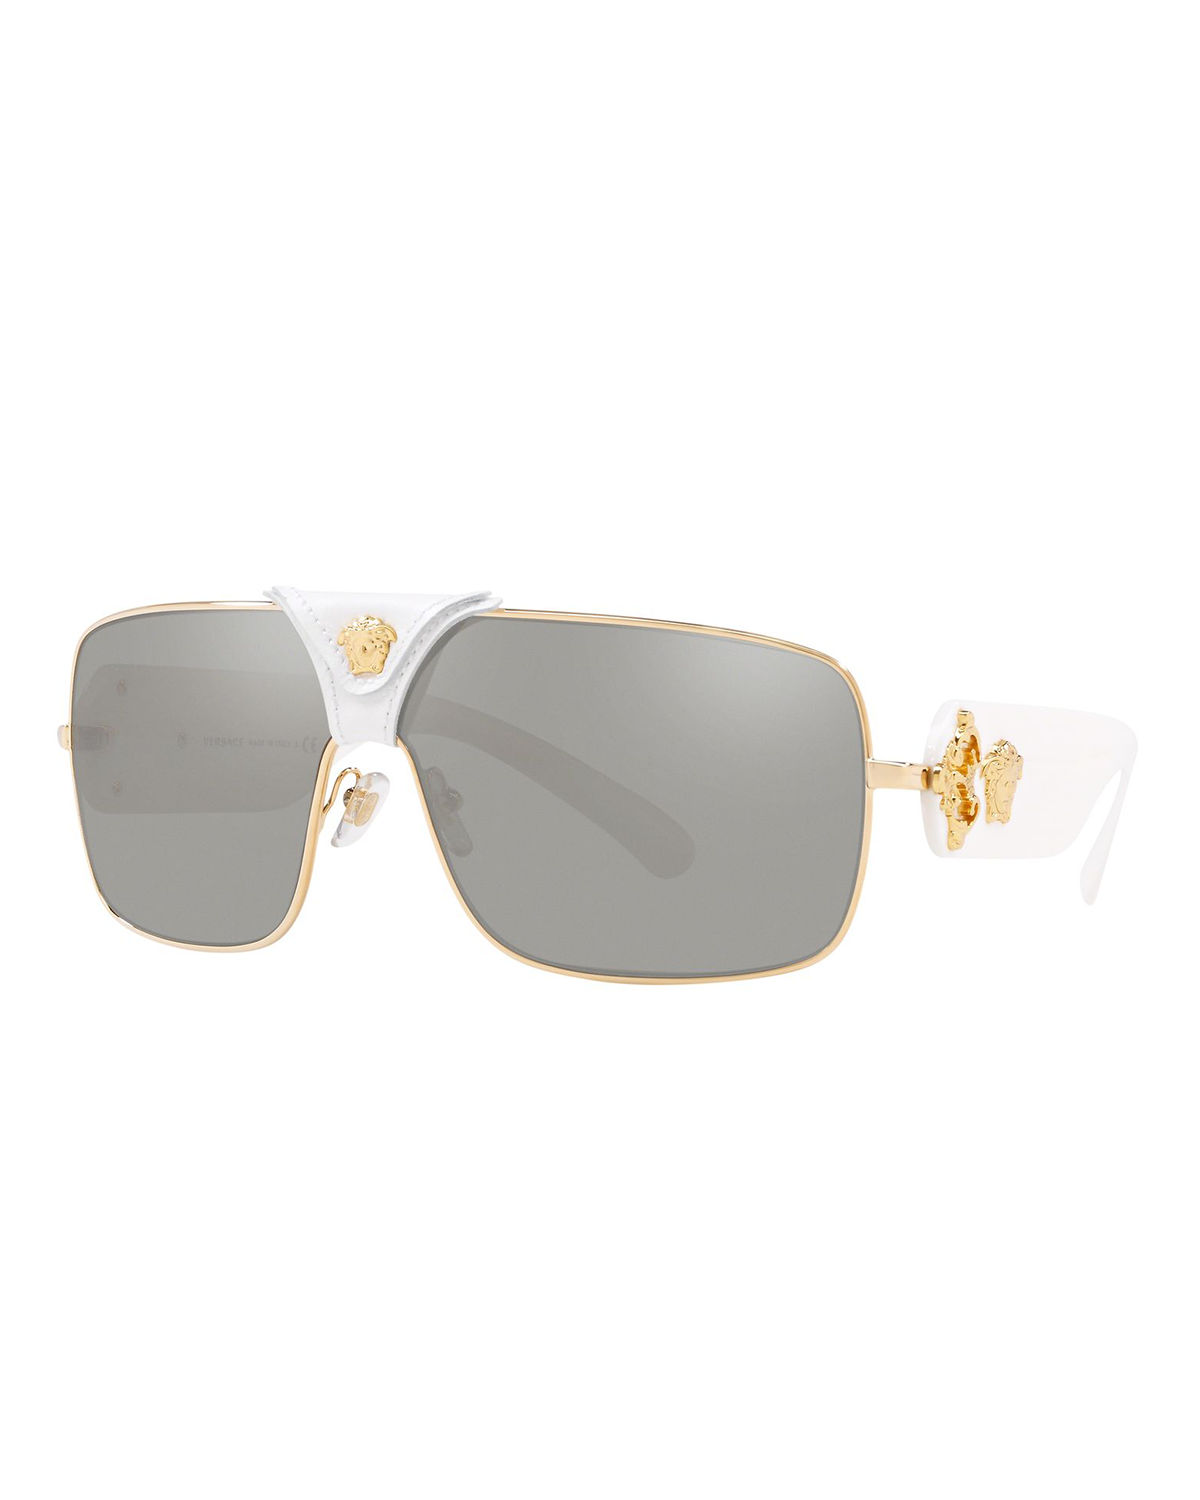 bfcc37ccf0 Versace Medusa Leather-Wrap Square Sunglasses In White Gold